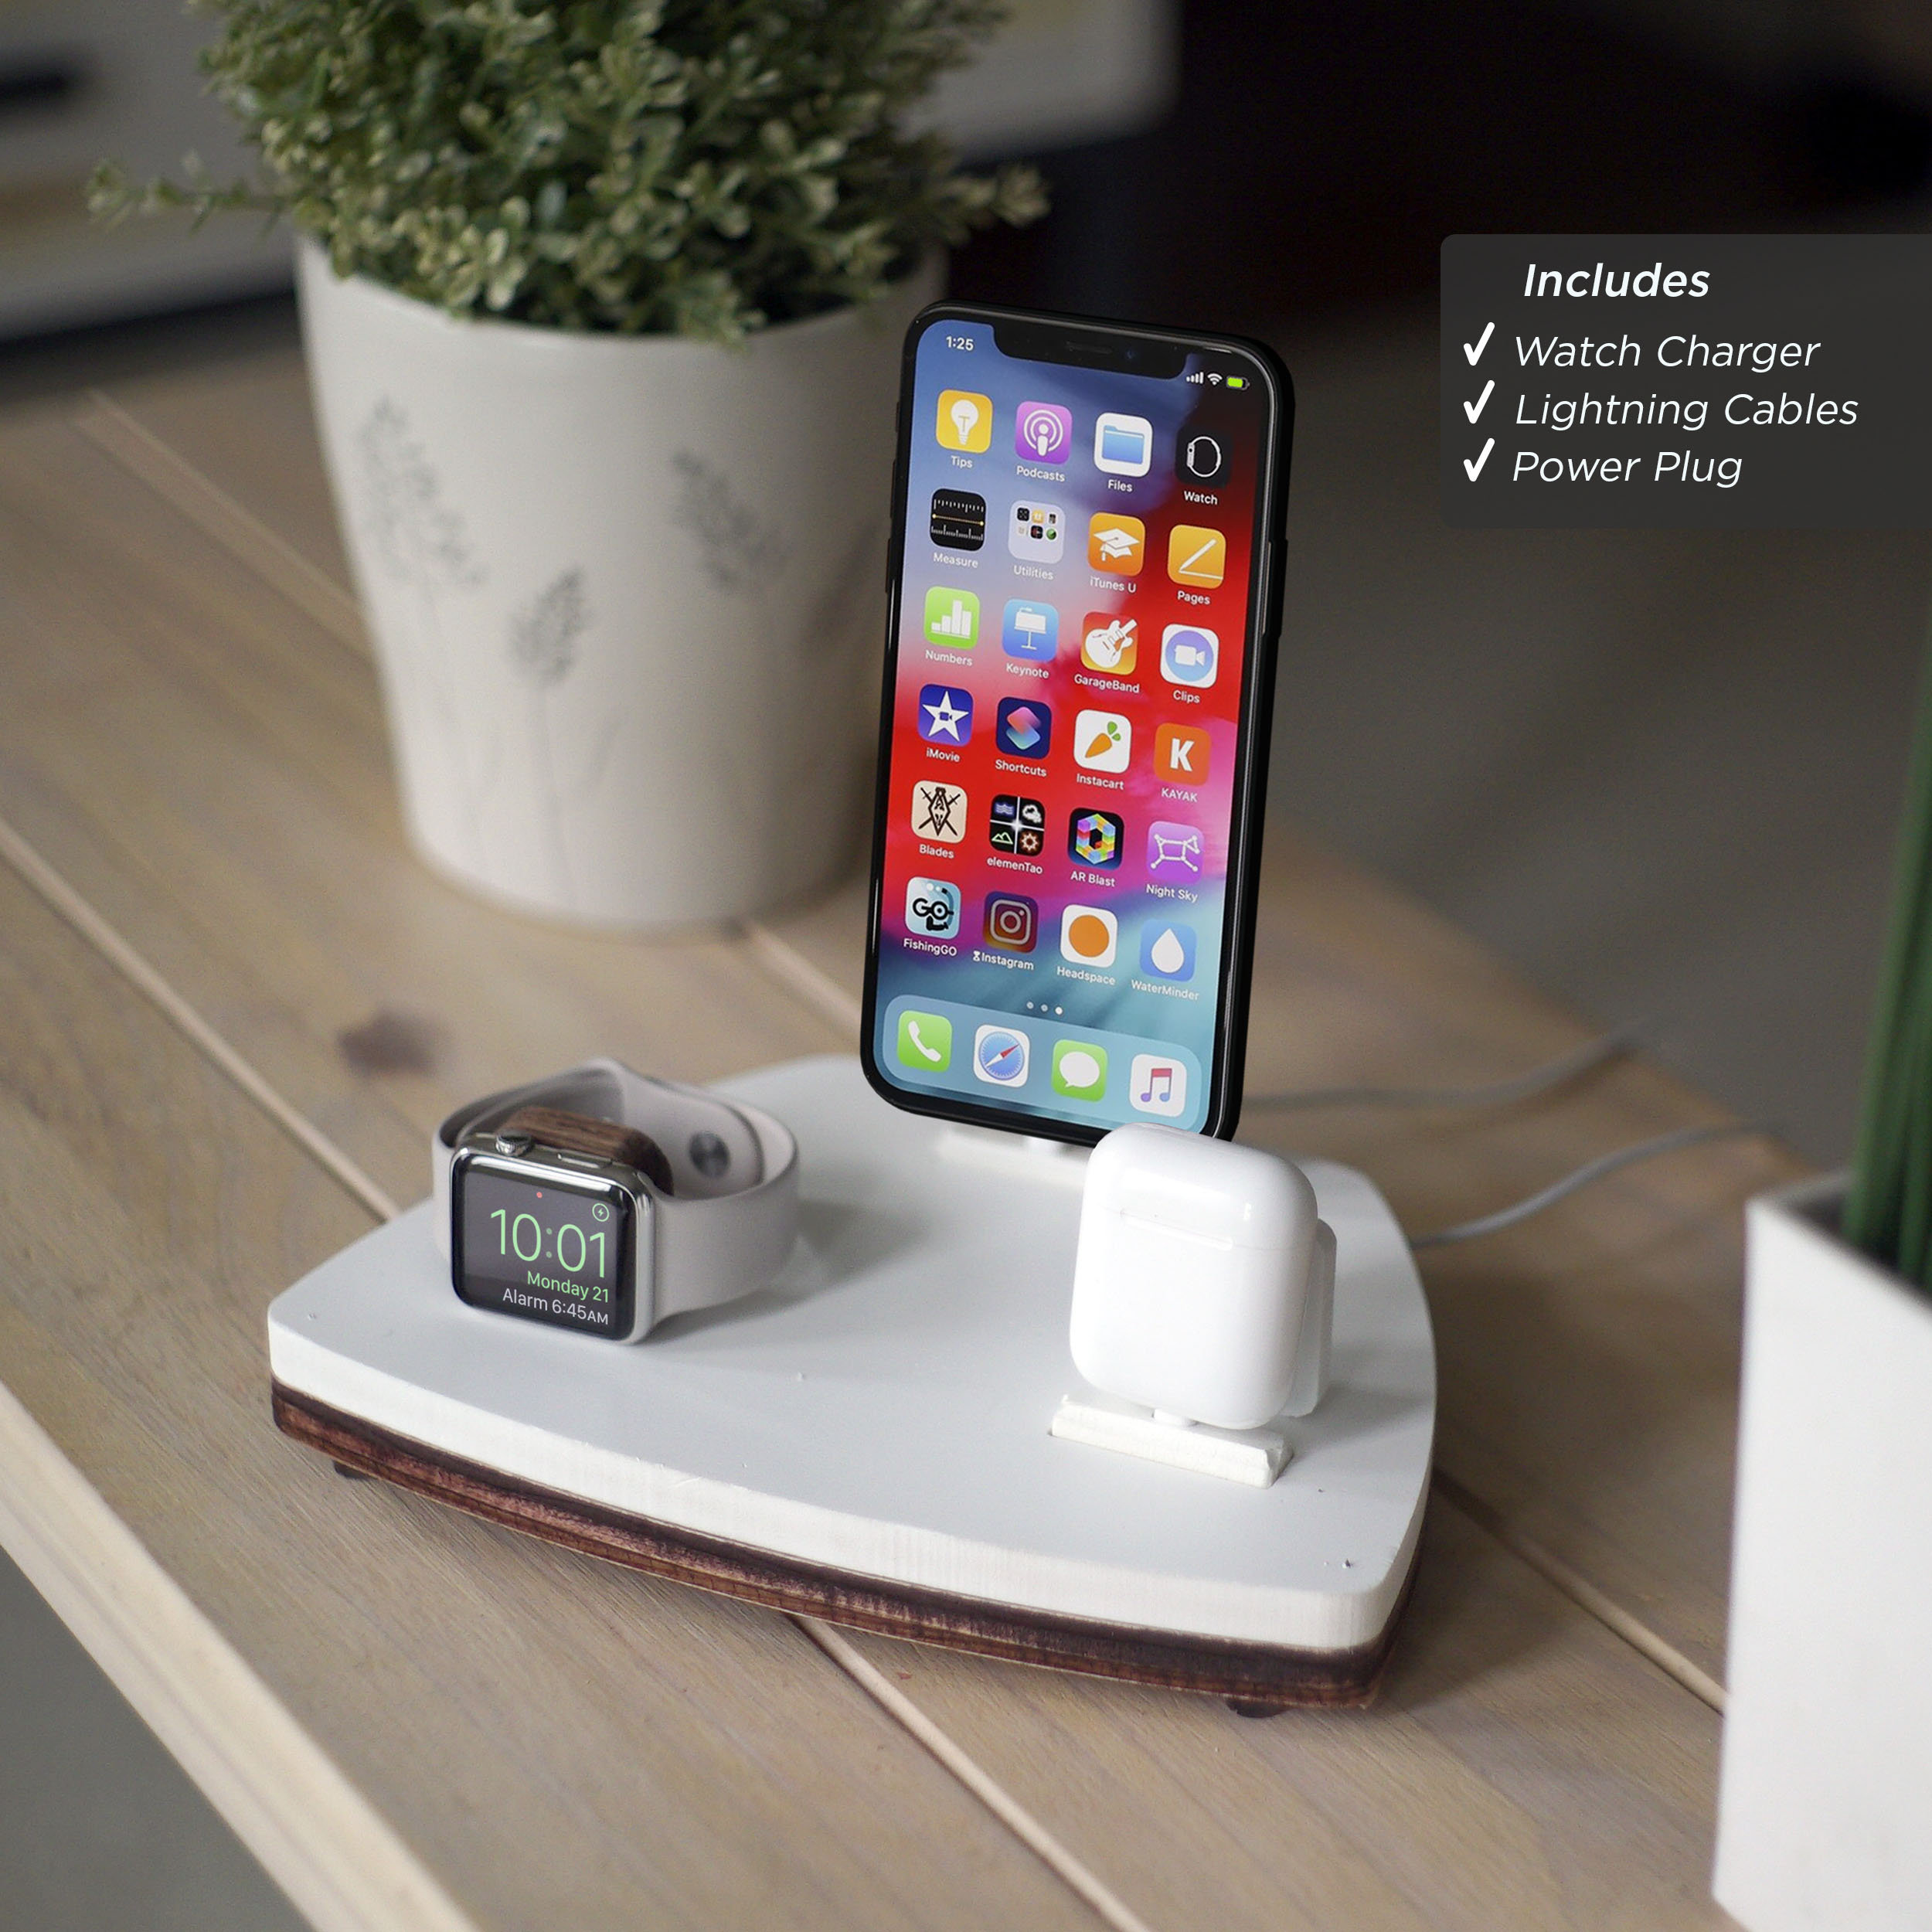 Airpods Trio 1 White Charging Station Wireless Iphone Xs Xr 8 Airpods Apple Watch Nightstand Organizer Birthday Gift Home Decor